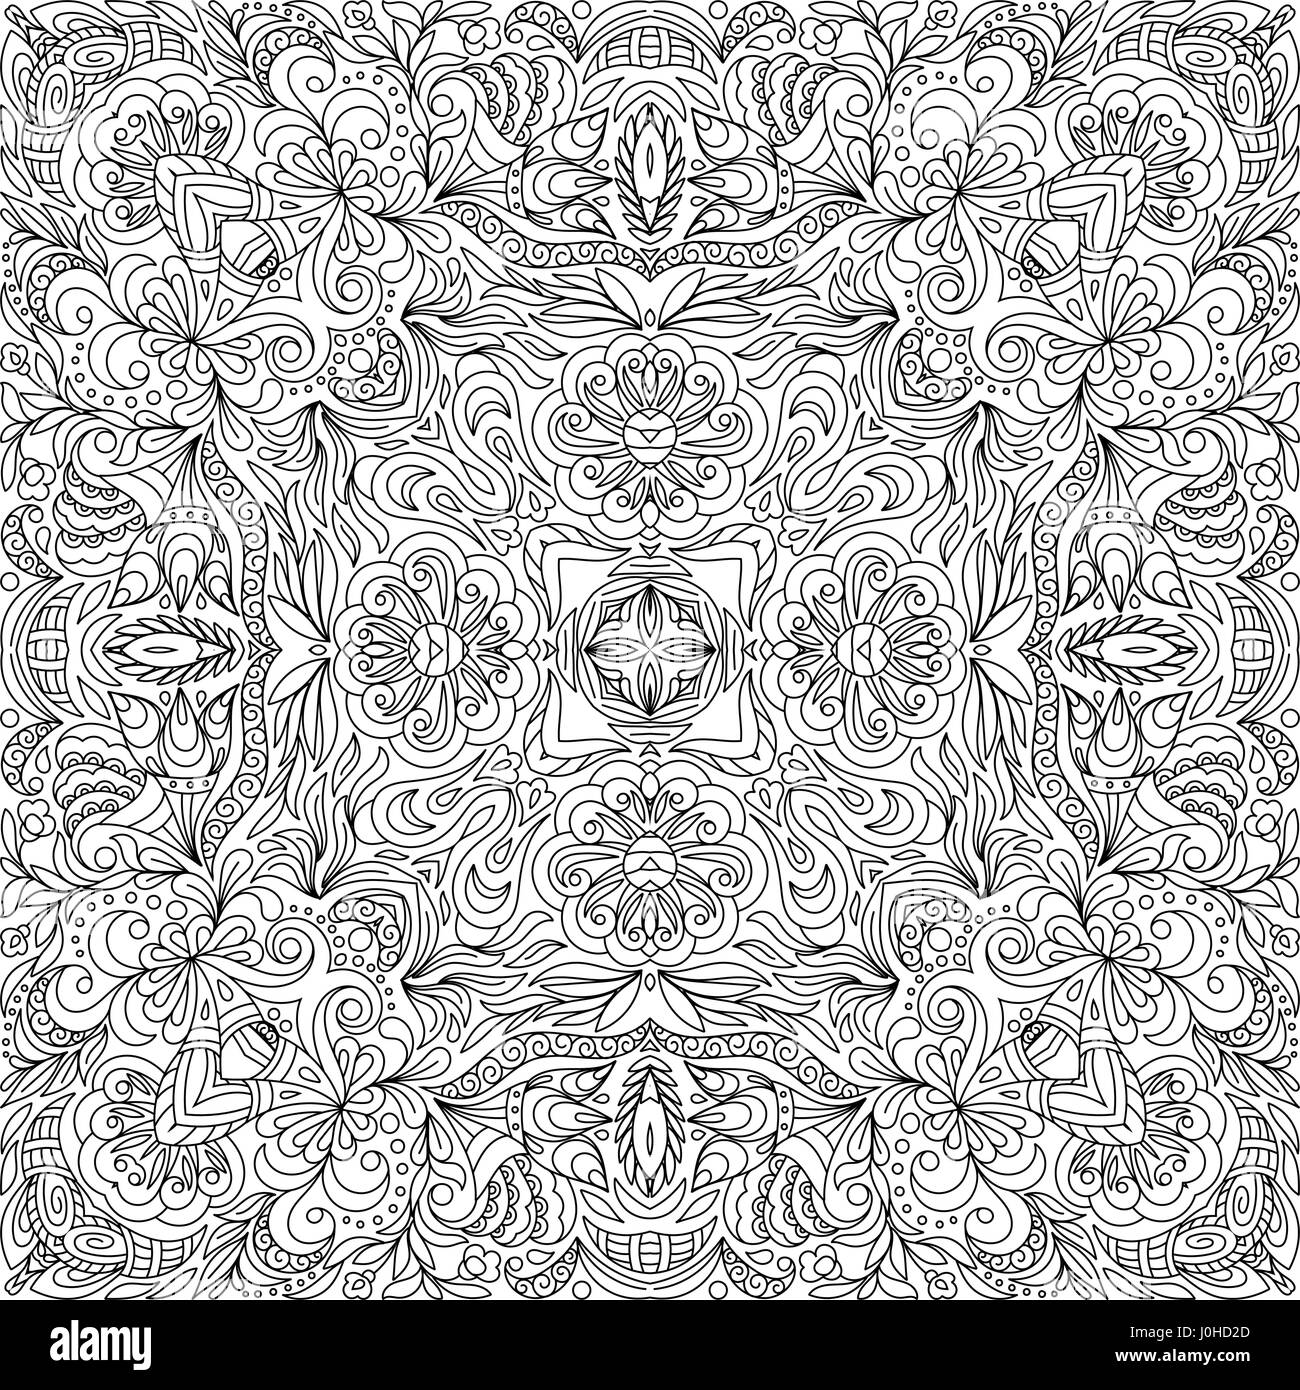 Square coloring book page for adults - floral authentic ...